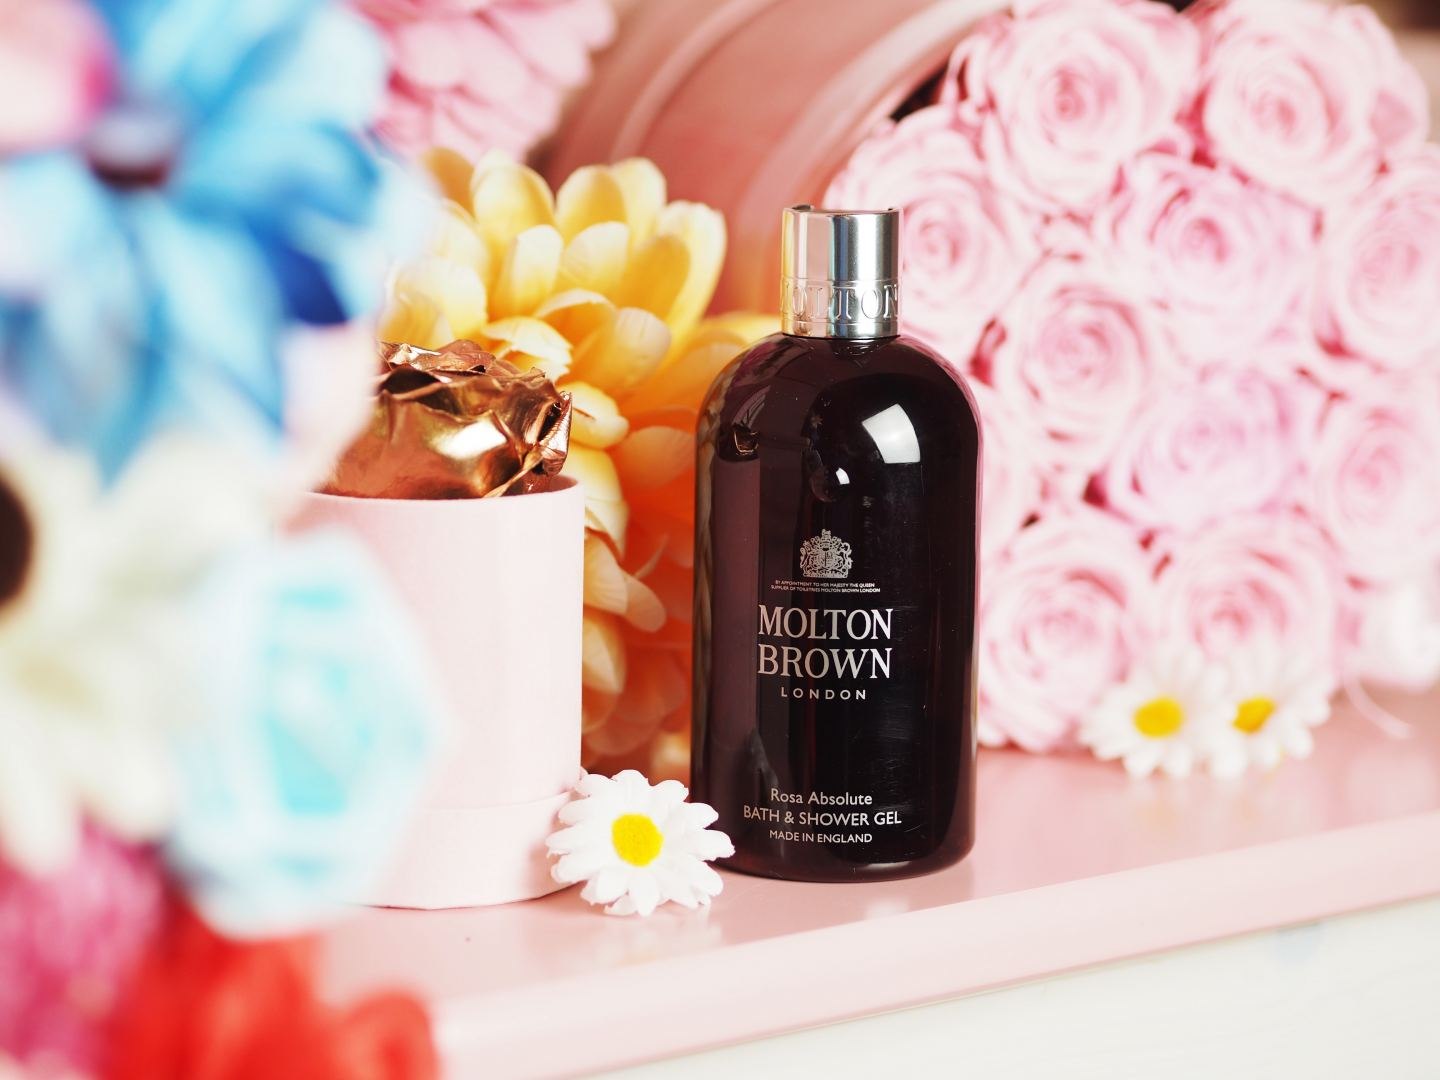 Molton Brown 'Rosa Absolute' Bath & Shower Gel